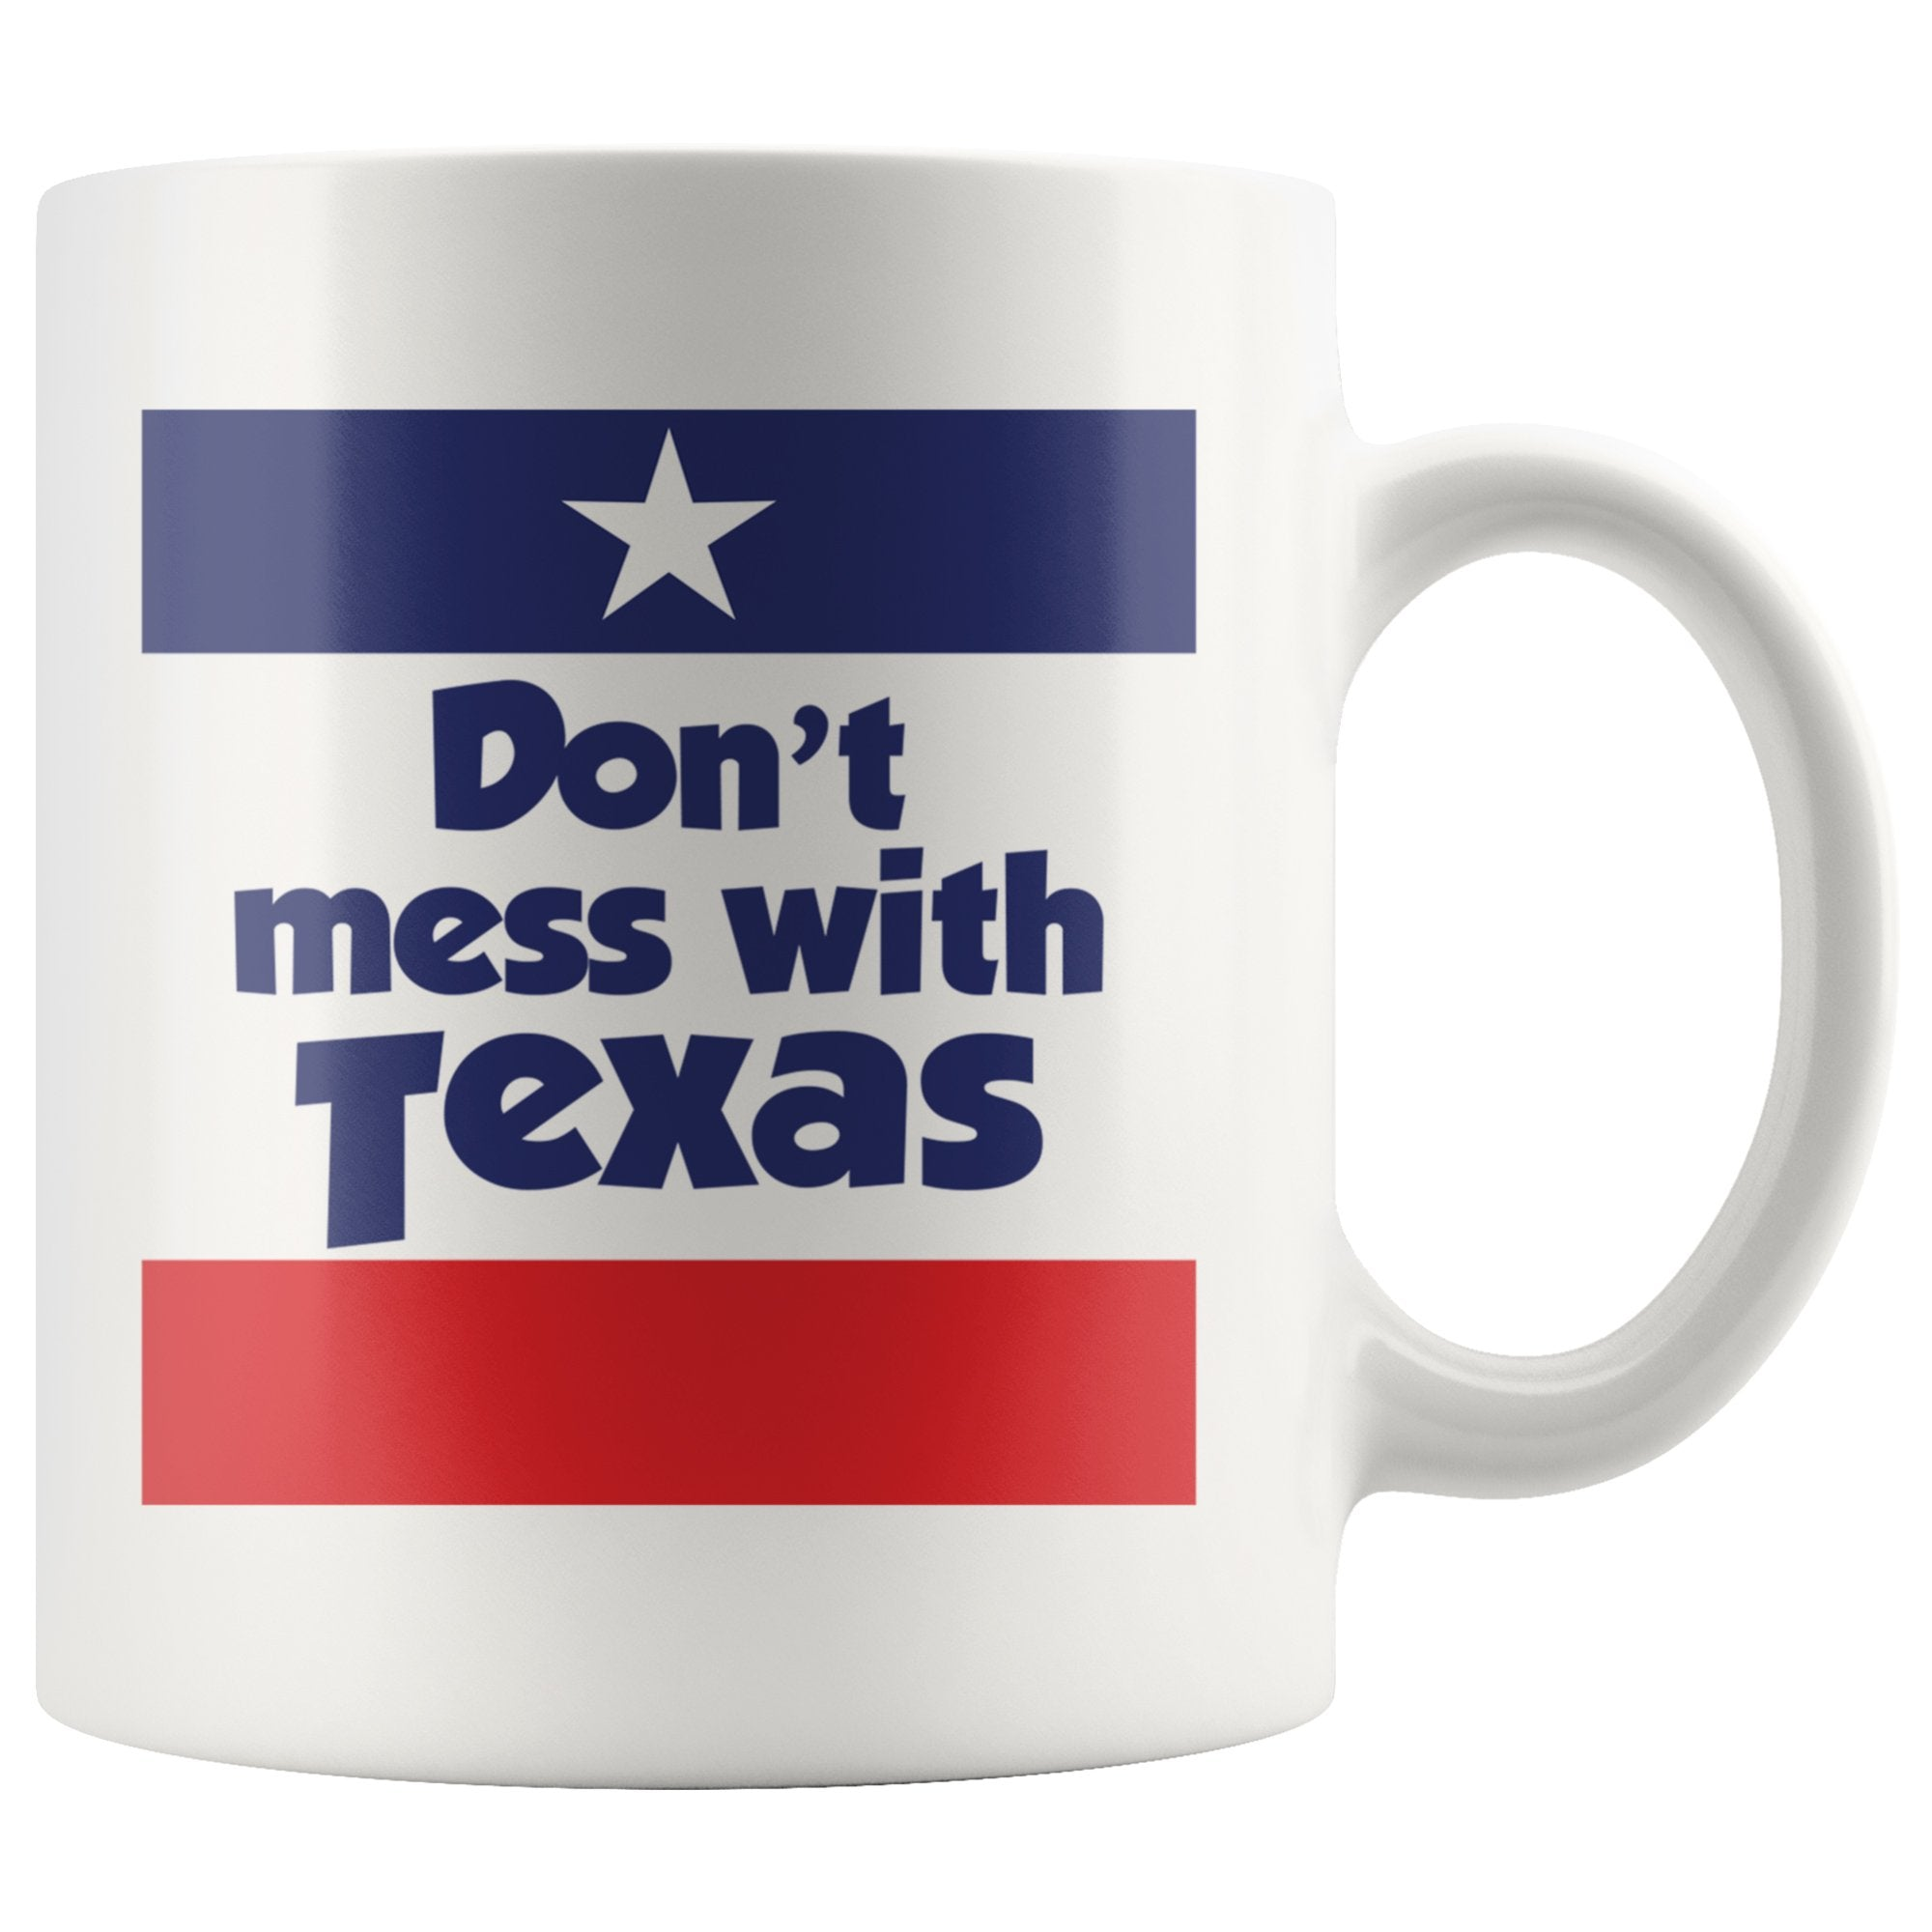 Texas Mug - Don't Mess With Texas Custom White Coffee Mug